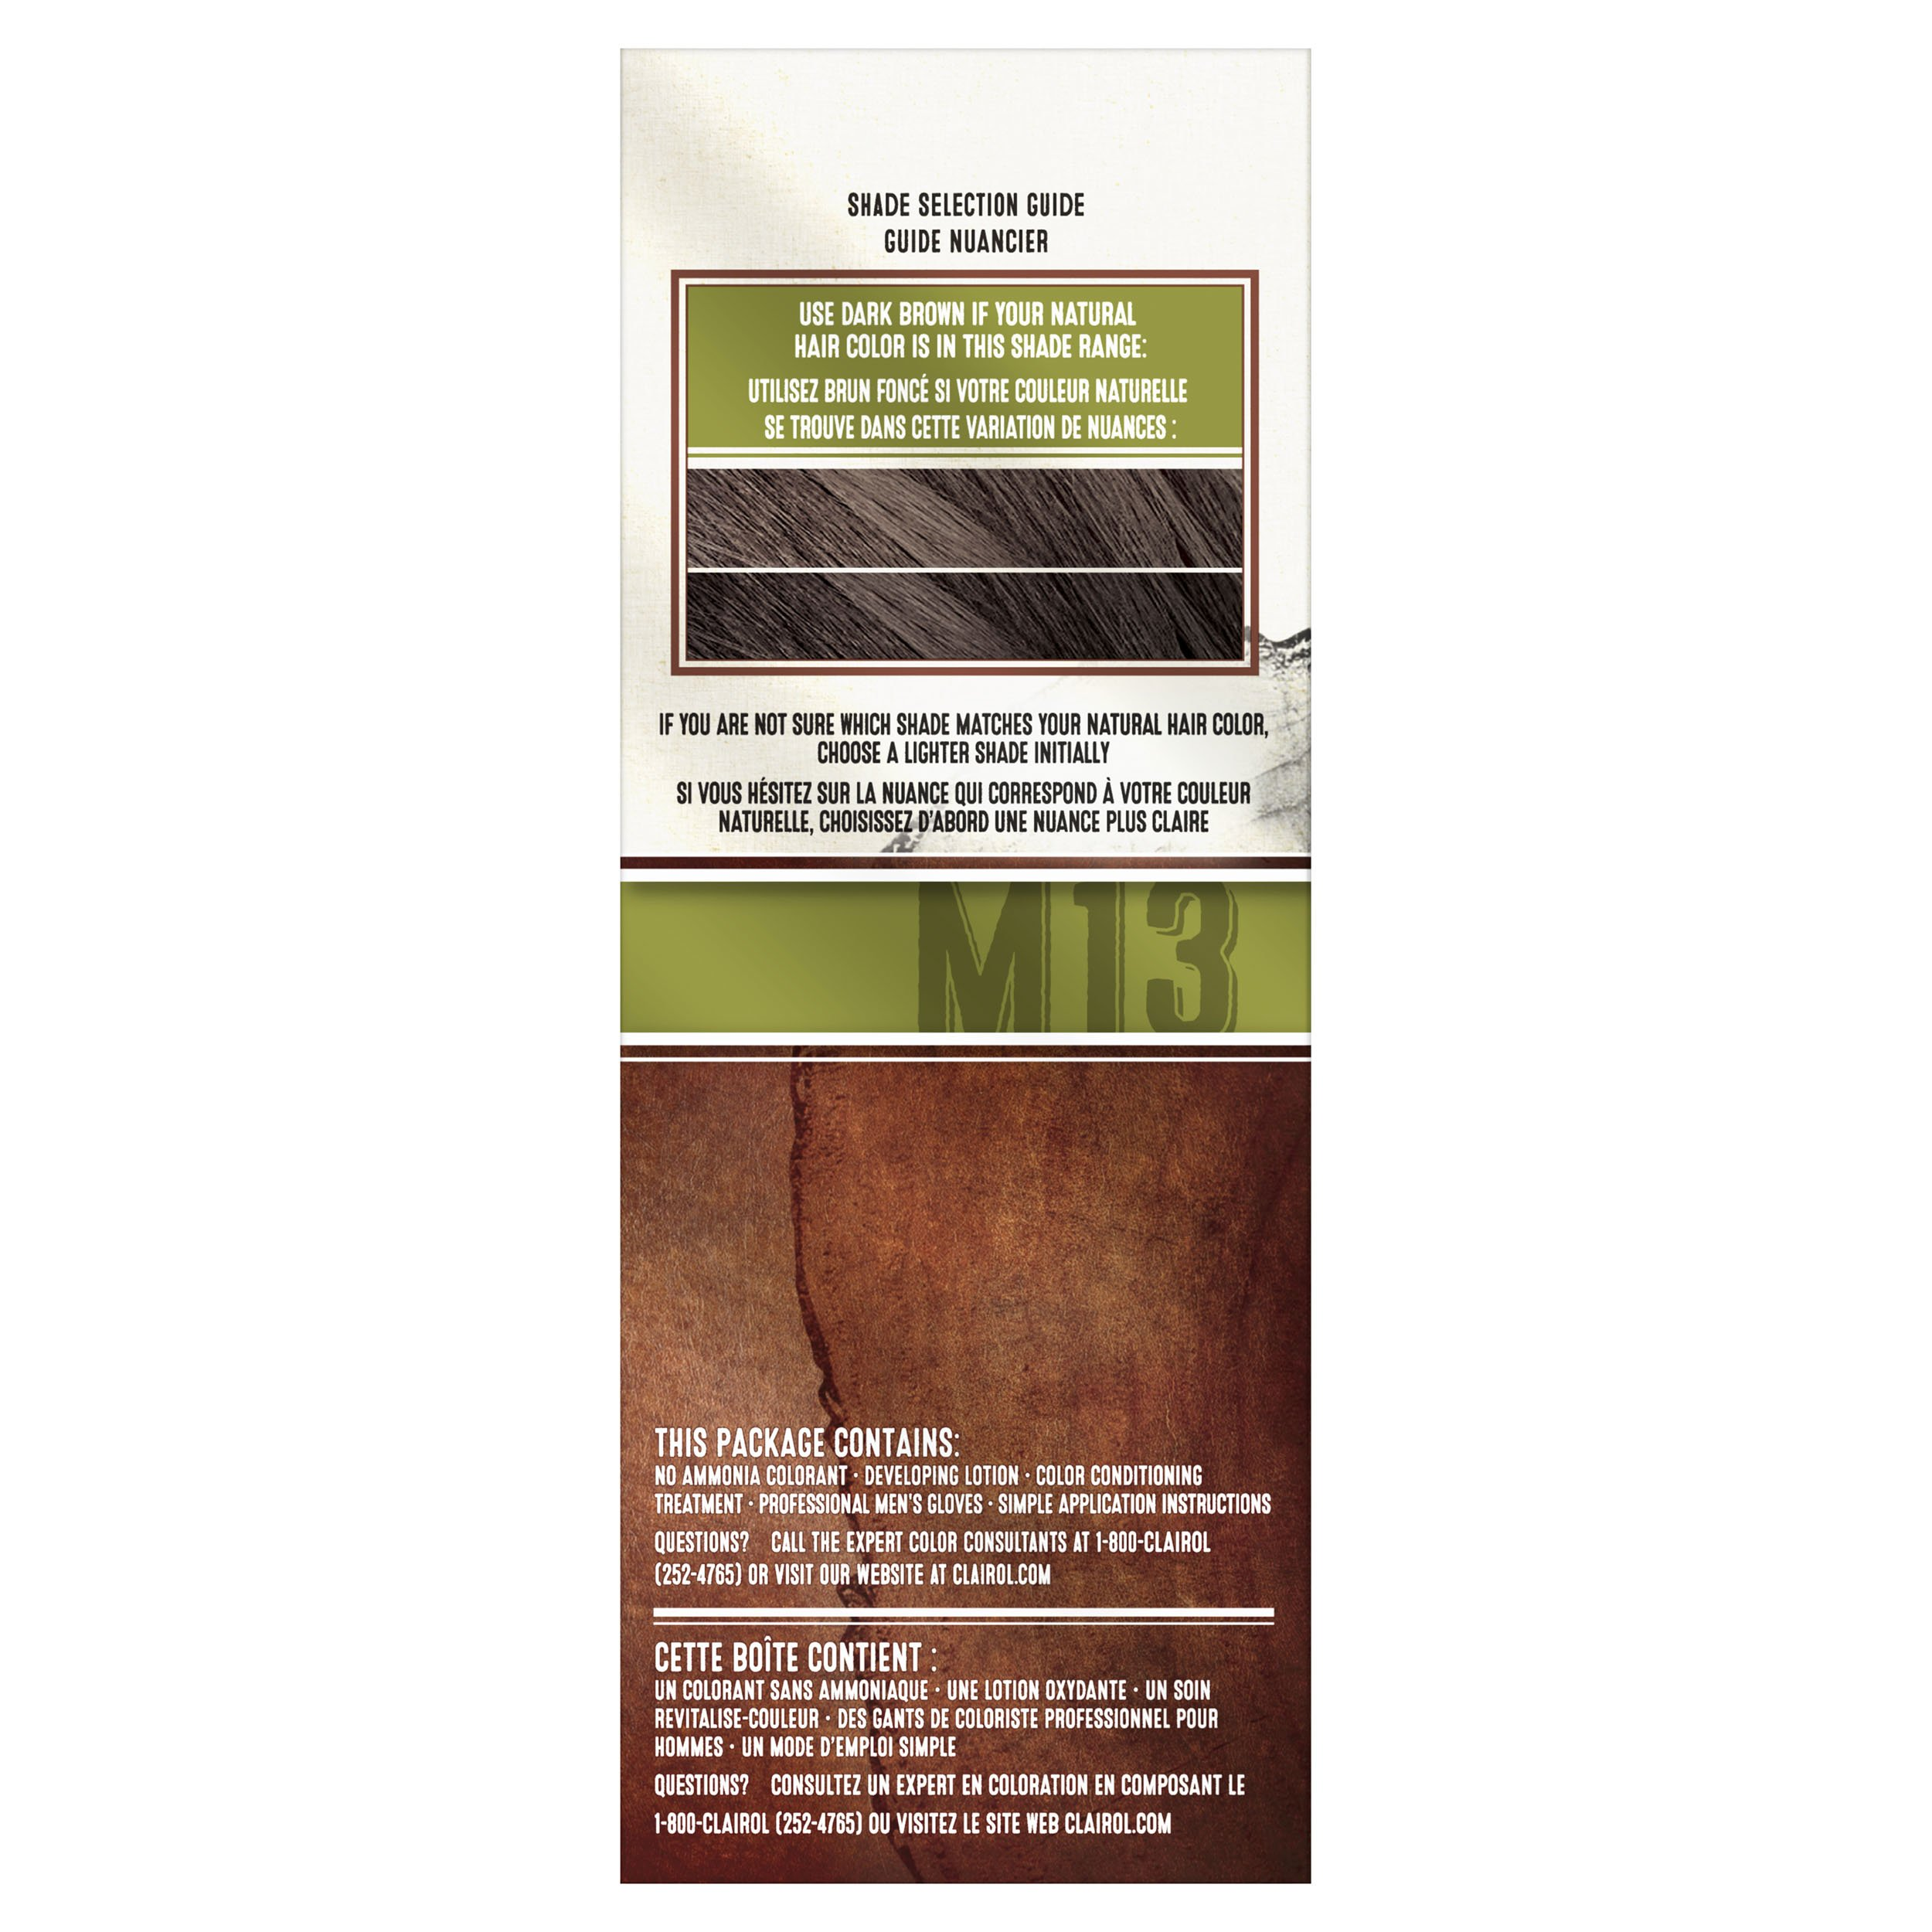 Clairol Natural Instincts Semi-Permanent Hair Color Kit For Men, 3 Pack, M13 Dark Brown Color, Ammonia Free, Long Lasting for 28 Shampoos by Clairol (Image #4)